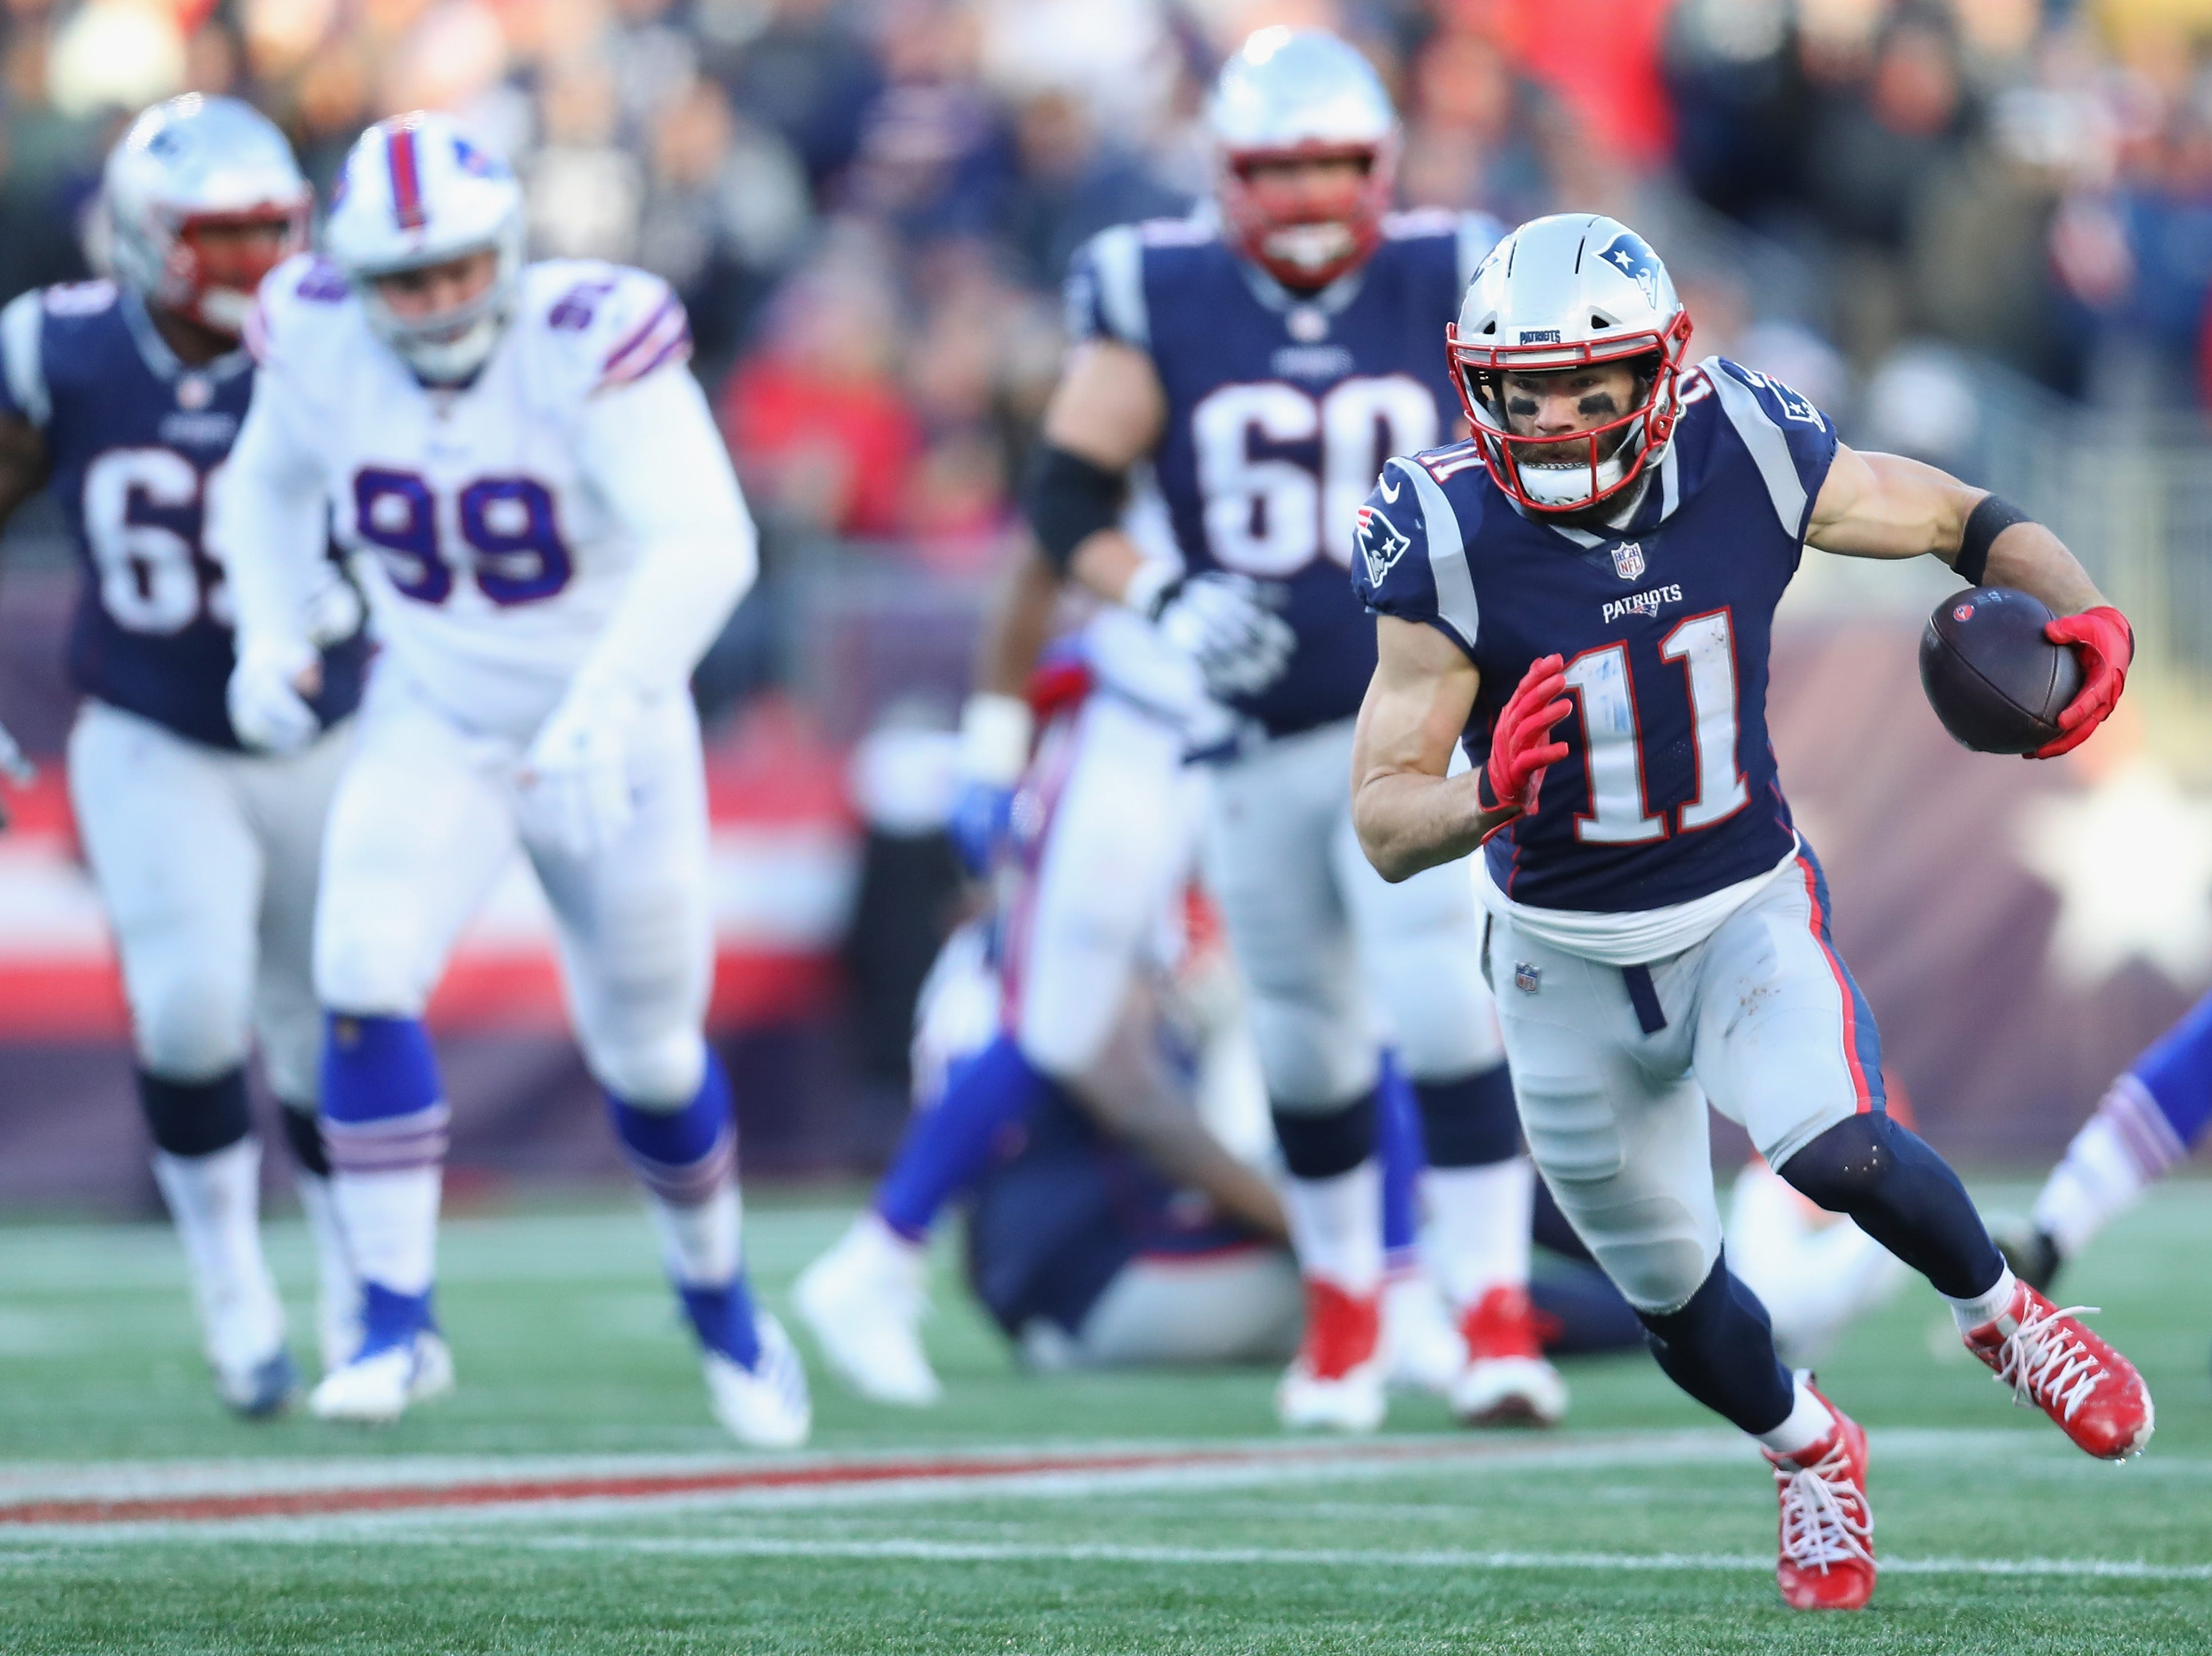 FOXBOROUGH, MA - DECEMBER 23:  Julian Edelman #11 of the New England Patriots runs with the ball during the second half against the Buffalo Bills at Gillette Stadium on December 23, 2018 in Foxborough, Massachusetts.  (Photo by Maddie Meyer/Getty Images)